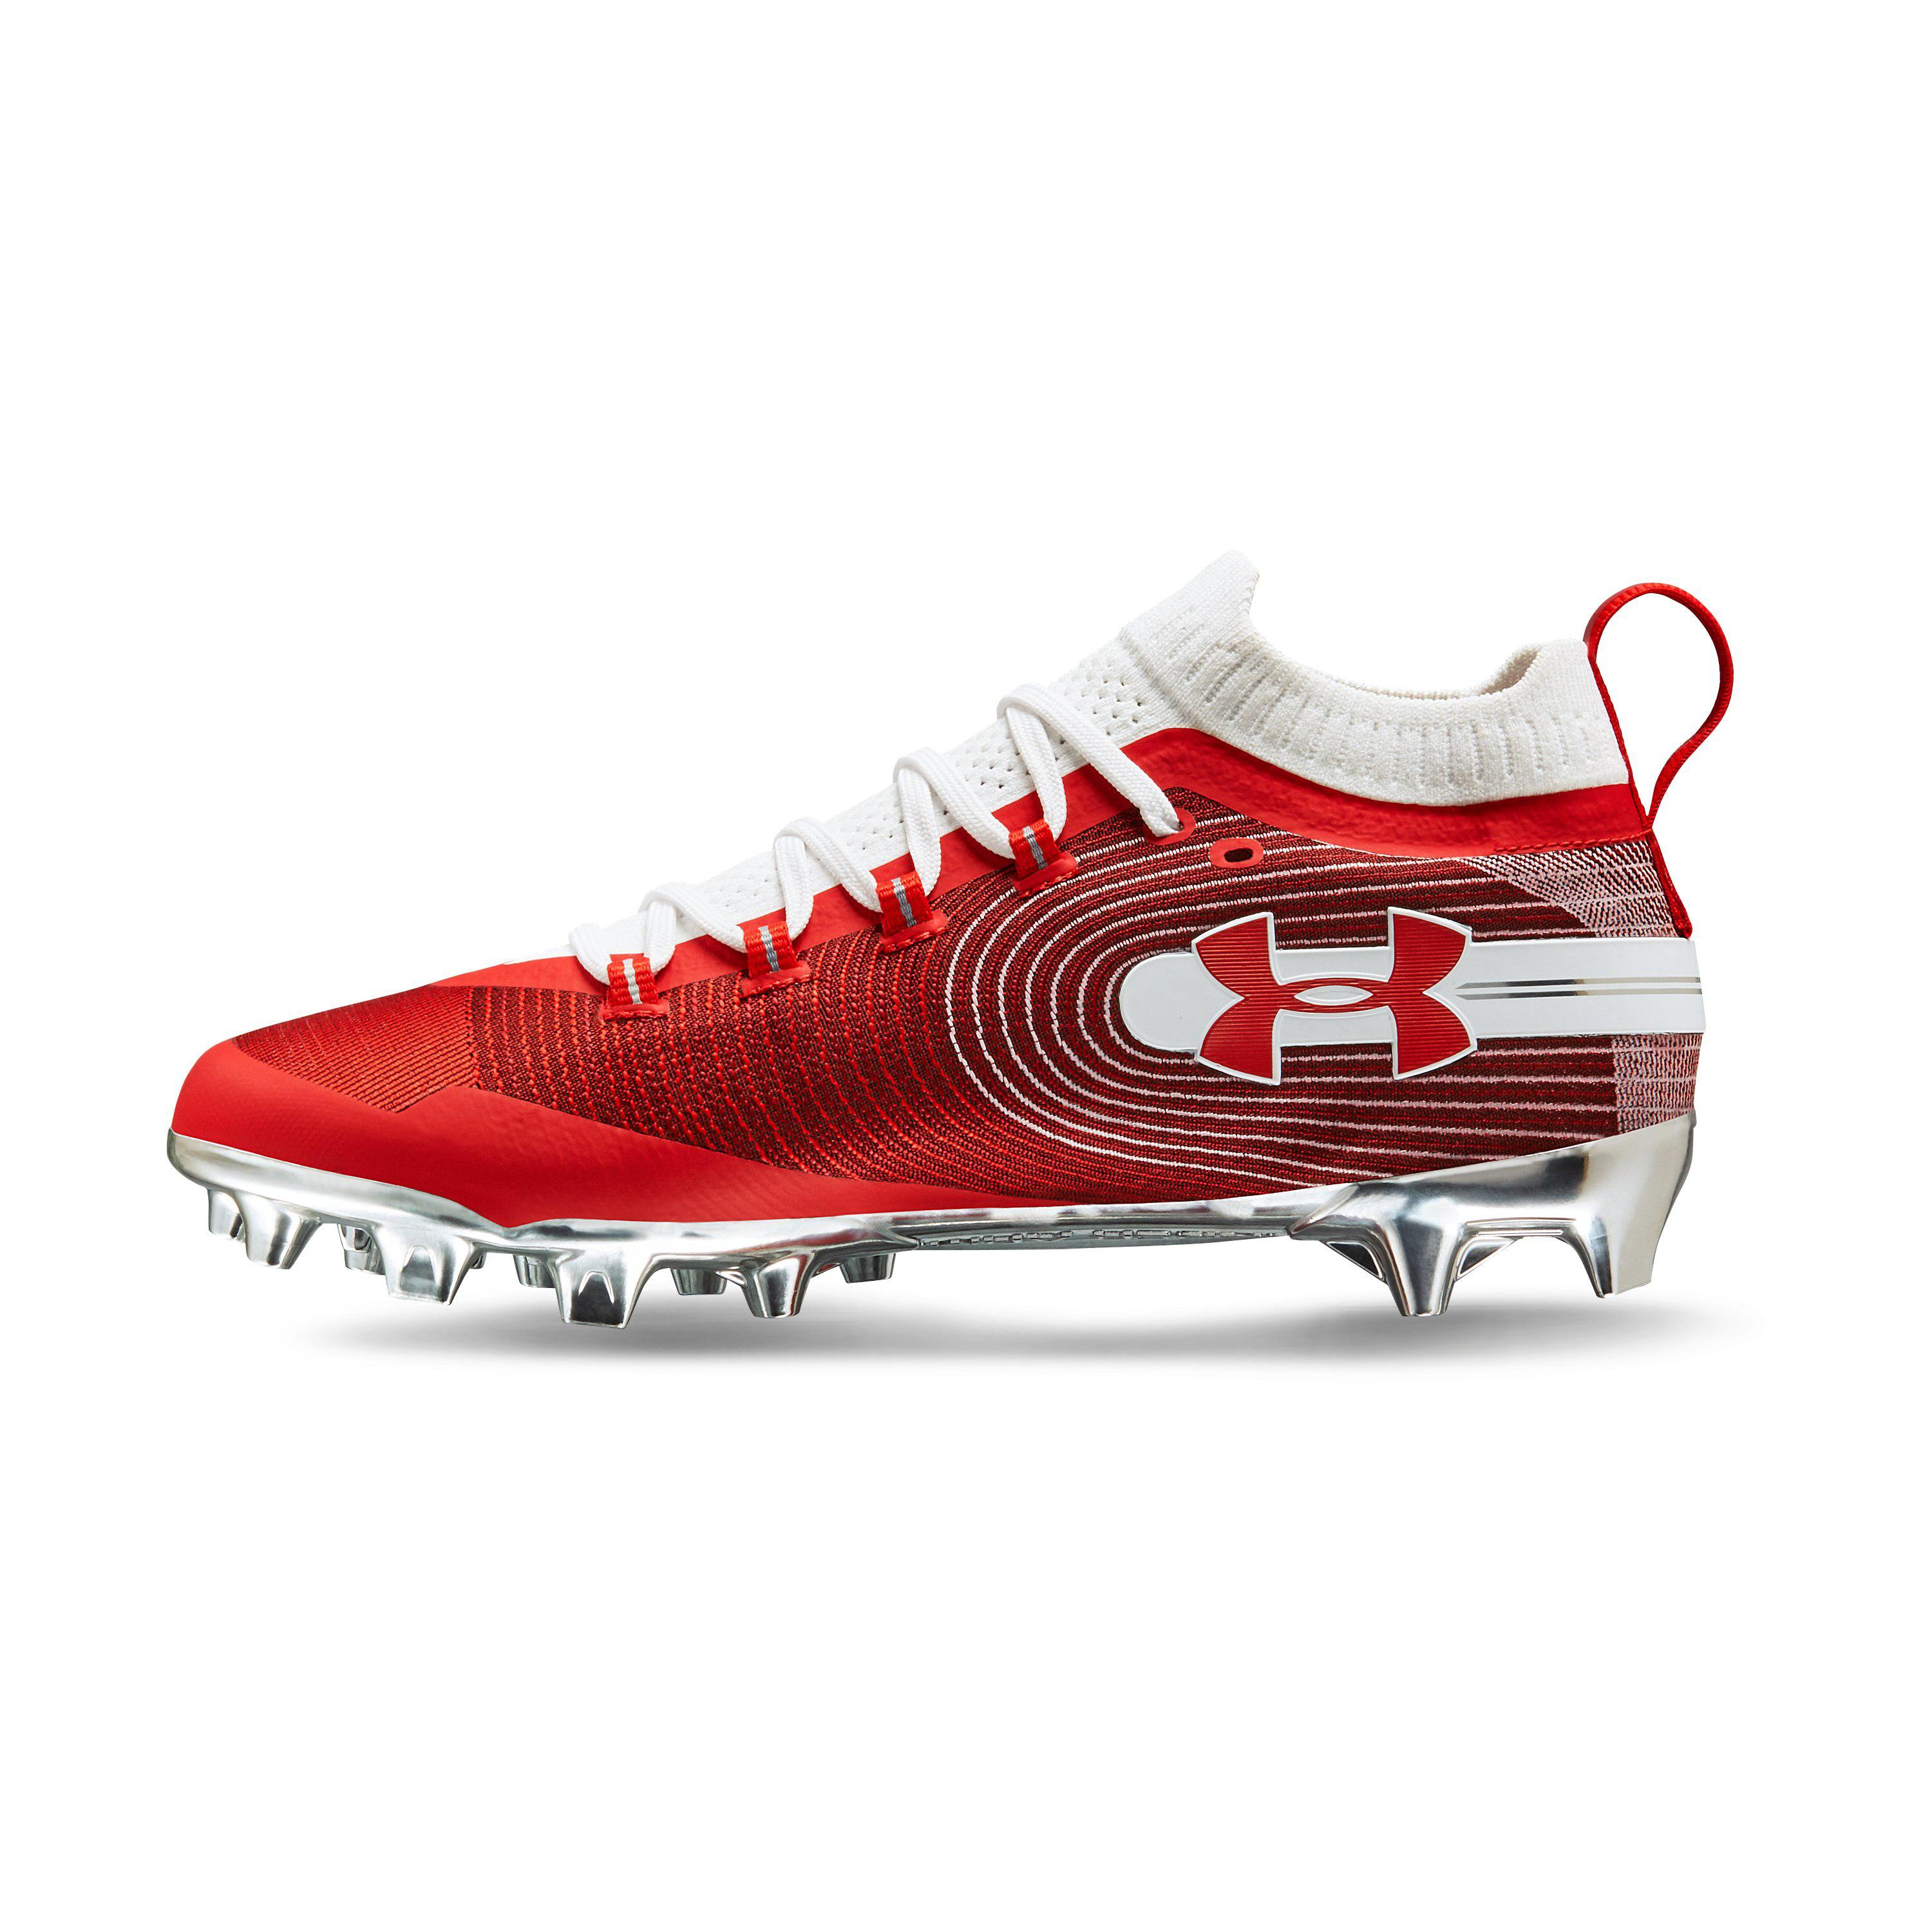 8453f0df50c4 Under Armour Men's Ua Spotlight Mc Football Cleats in Red for Men - Lyst